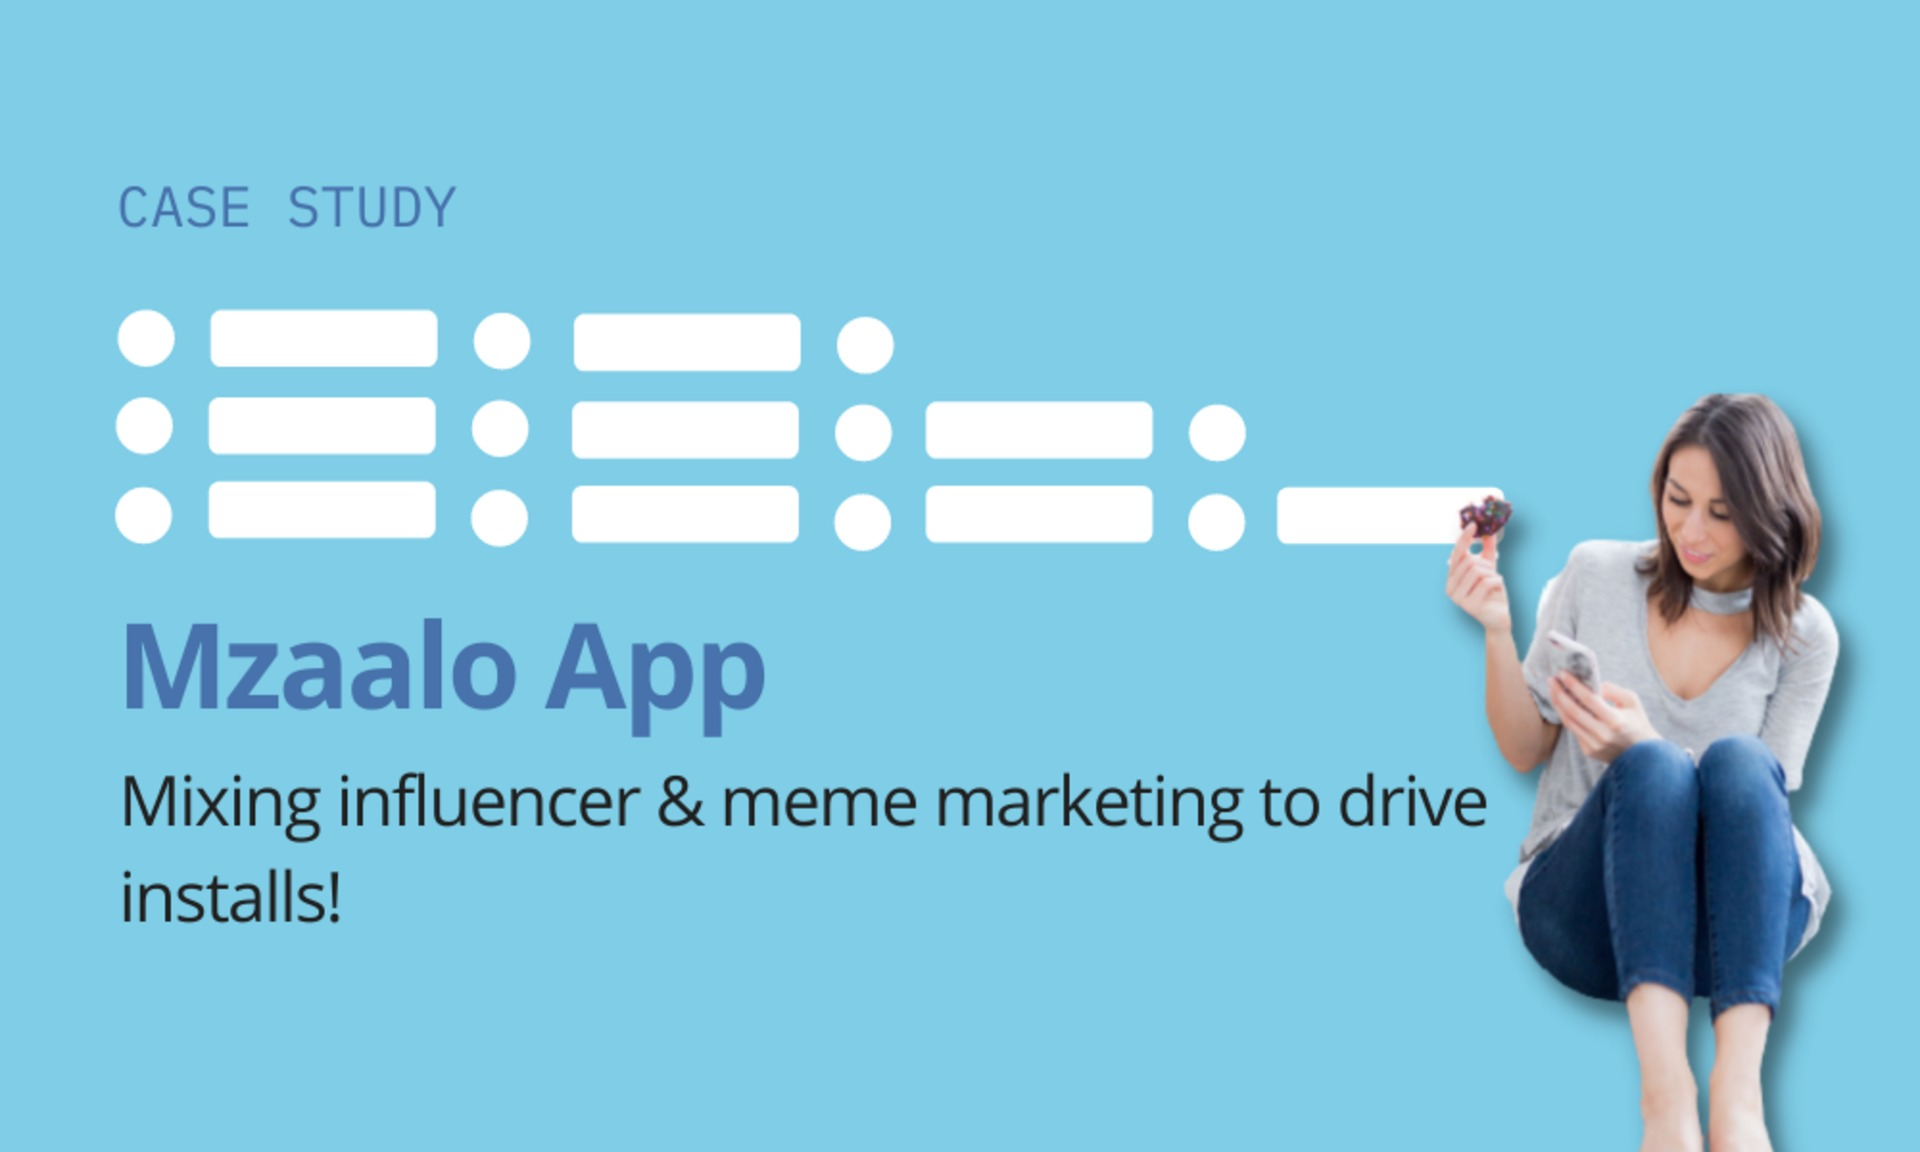 Mzaalo: Mixing influencer & meme marketing to drive installs! image